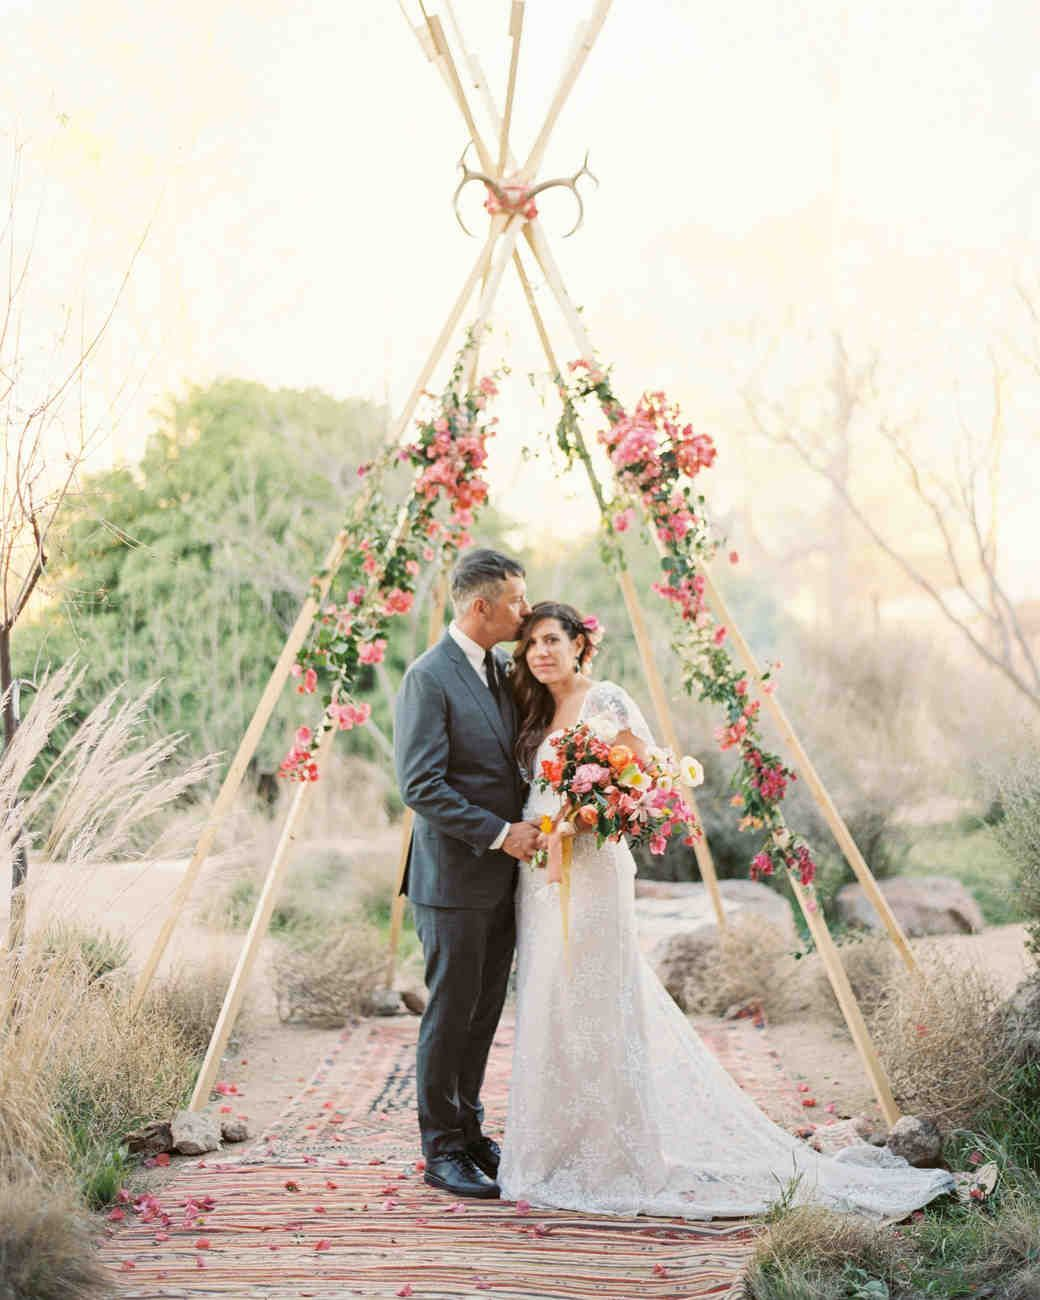 Gorgeous tipi inspiration read our simple how to guide to create a